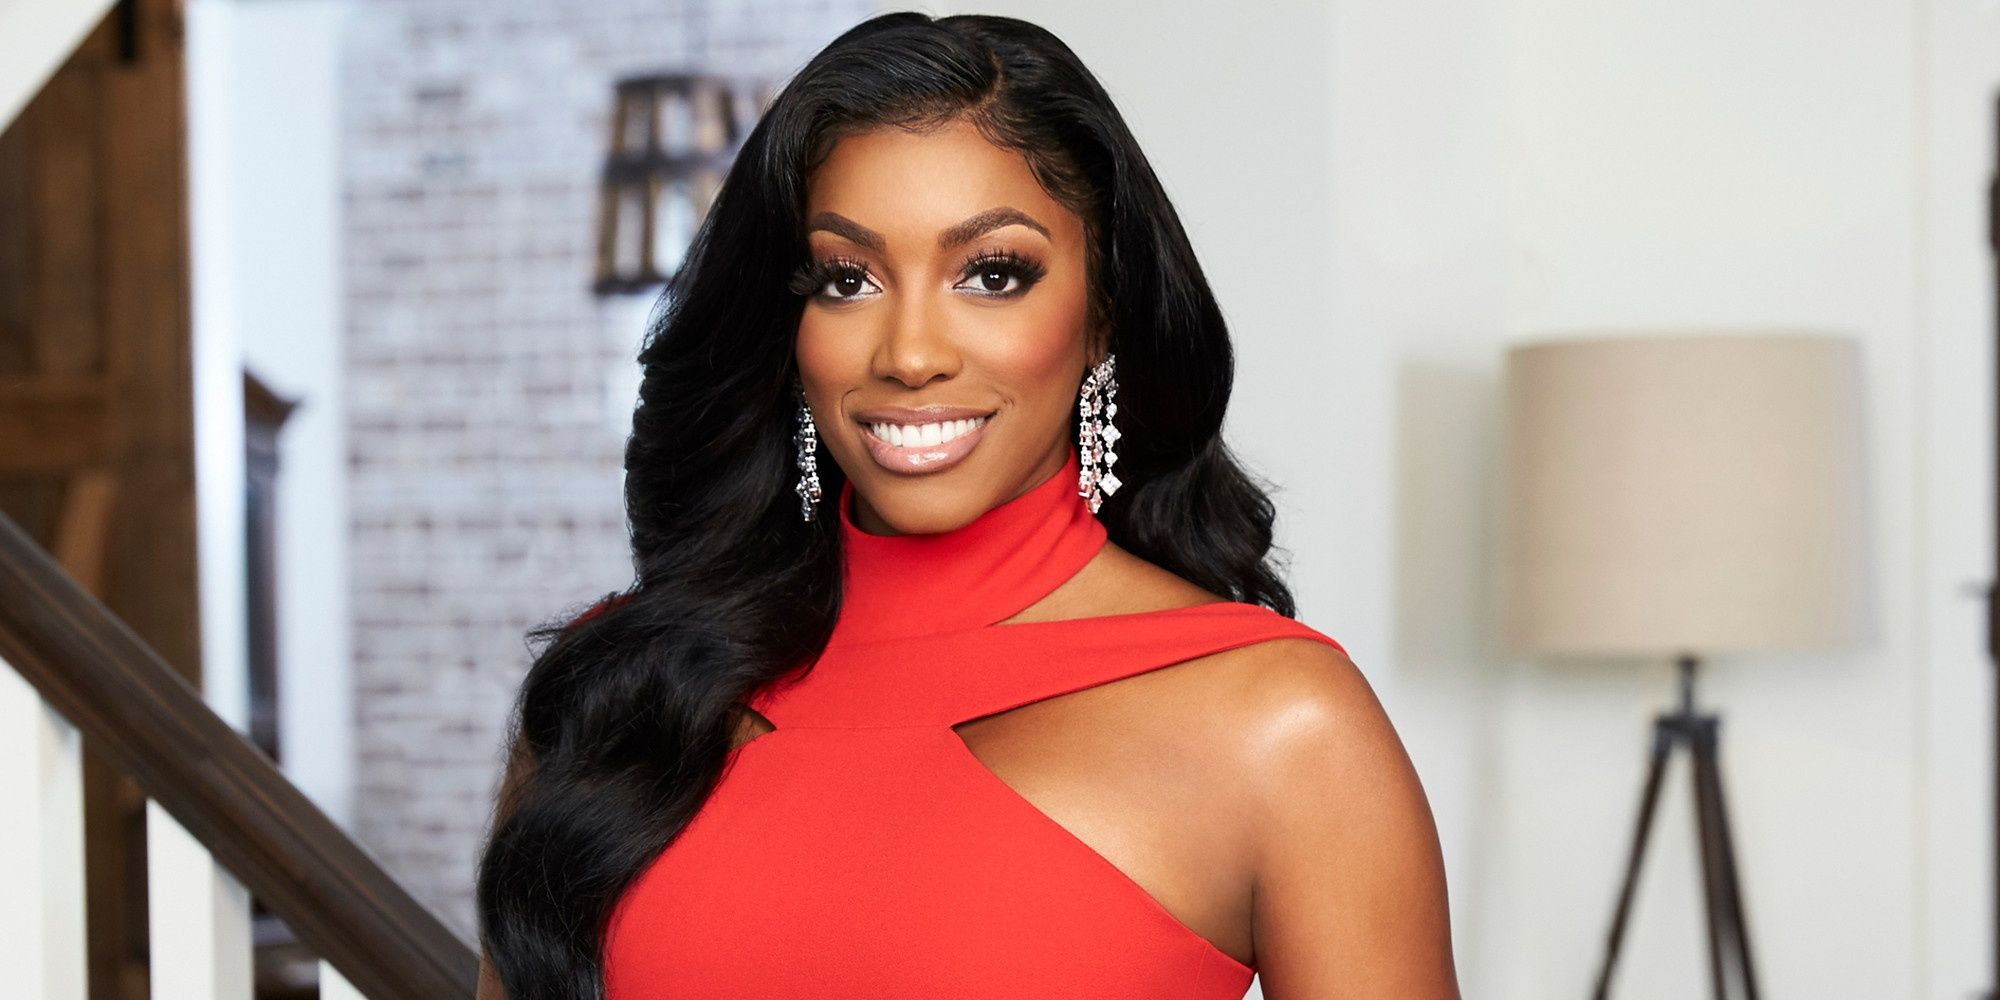 Porsha Williams Is Getting Ready For Halloween